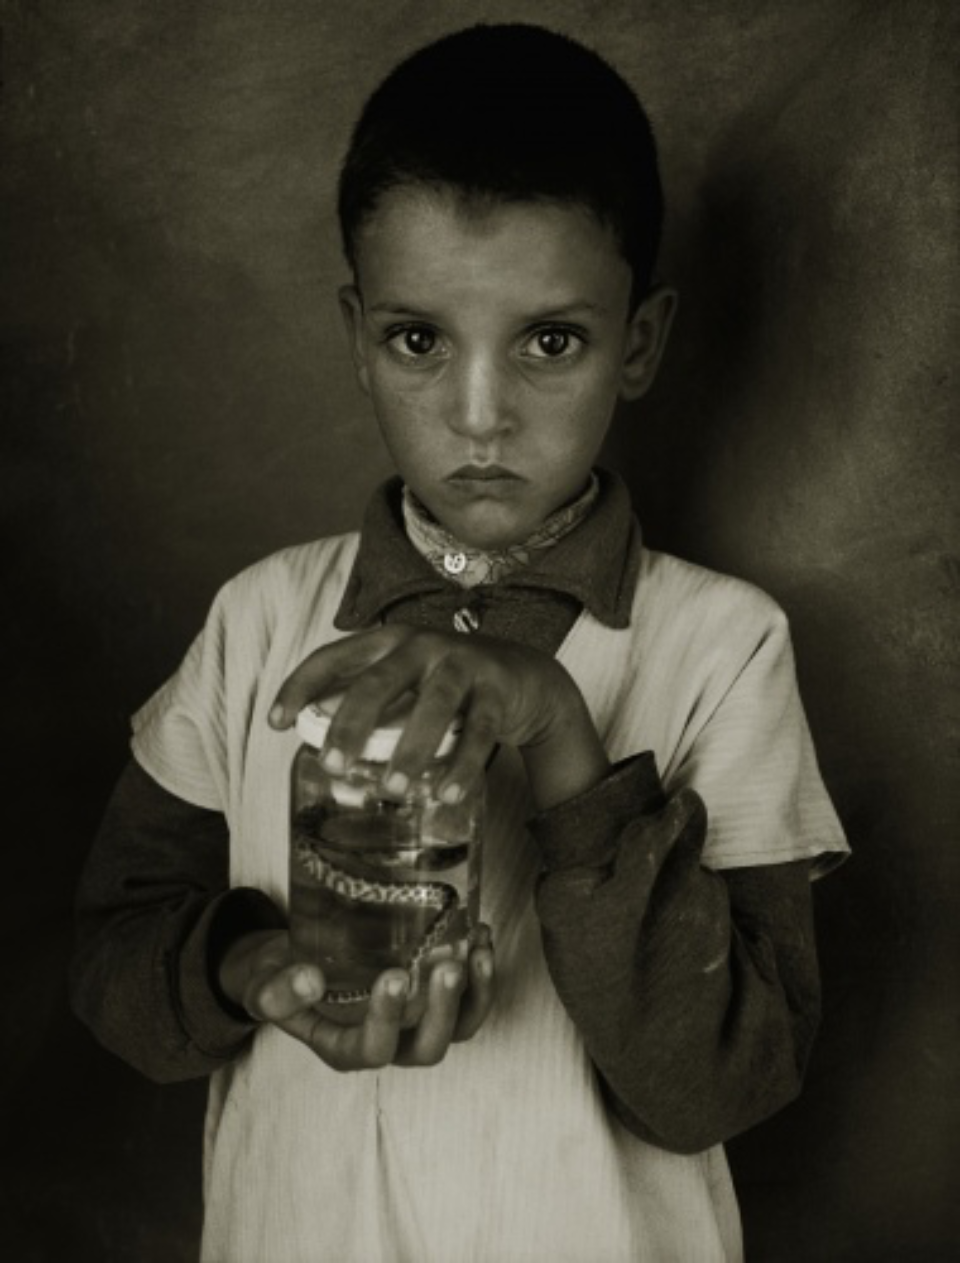 Albert Watson: Mostapha Elhanch, Boy with Jar Marrakech, 1997 Archival pigment print Signed, titled, dated and numbered on verso 76 x 61 cm Ed. 25